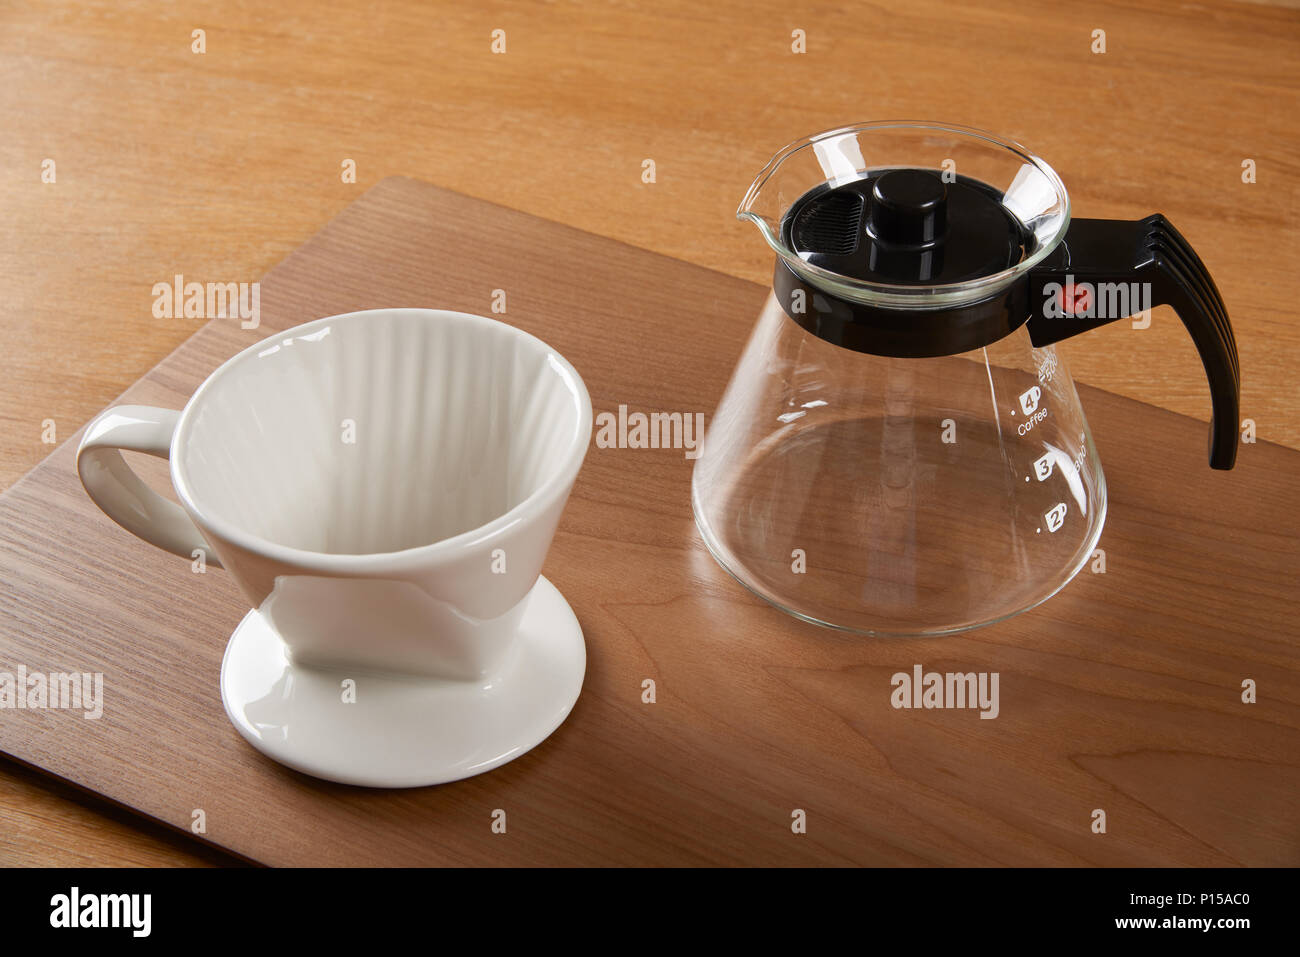 ceramic hand drip coffee brewer (dripper) and glass server (carafe) - Stock Image